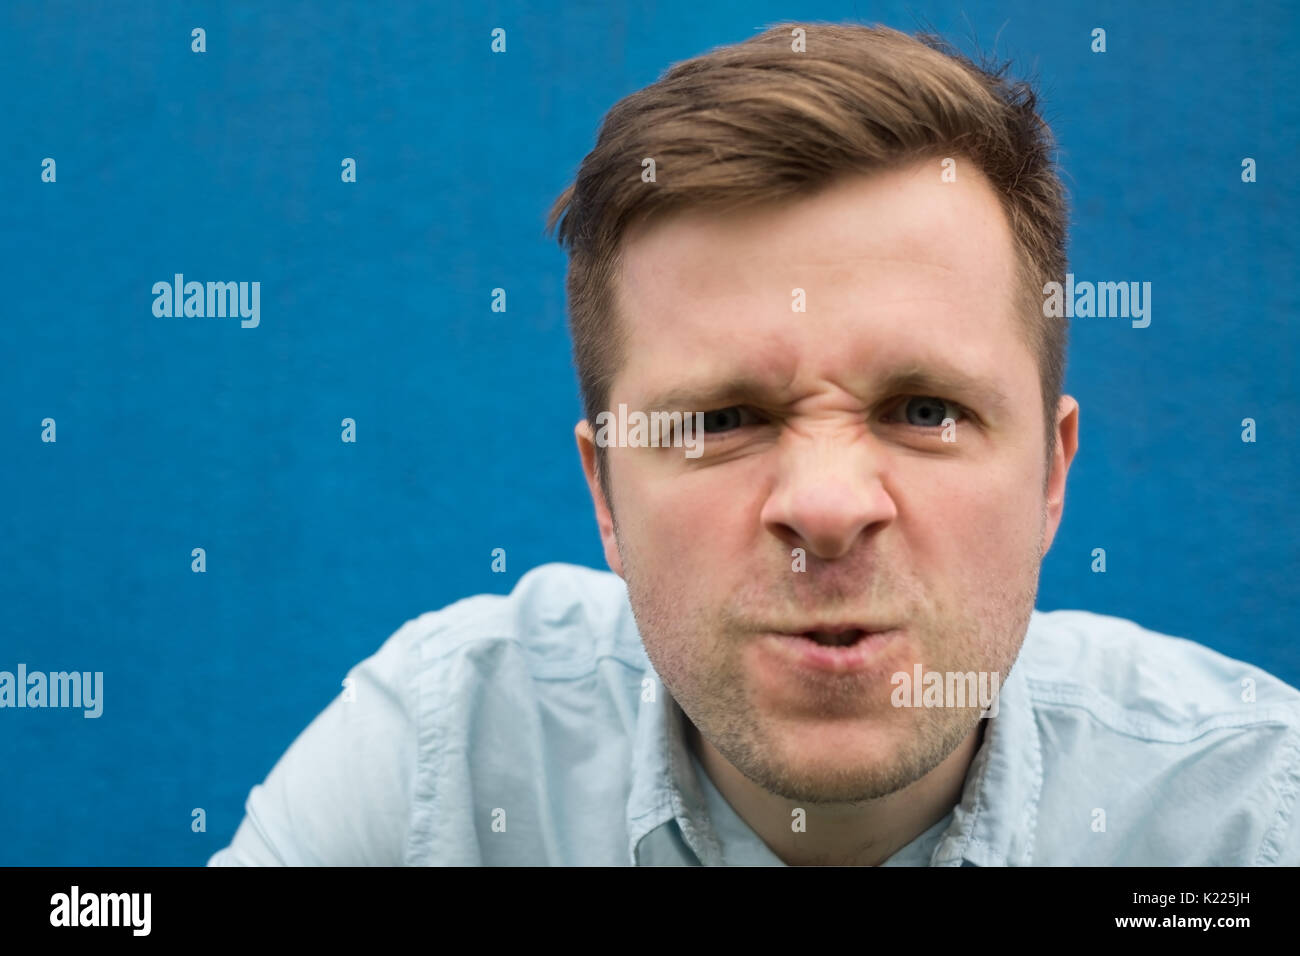 Face of an angry and furious caucasian man on a blue background. - Stock Image